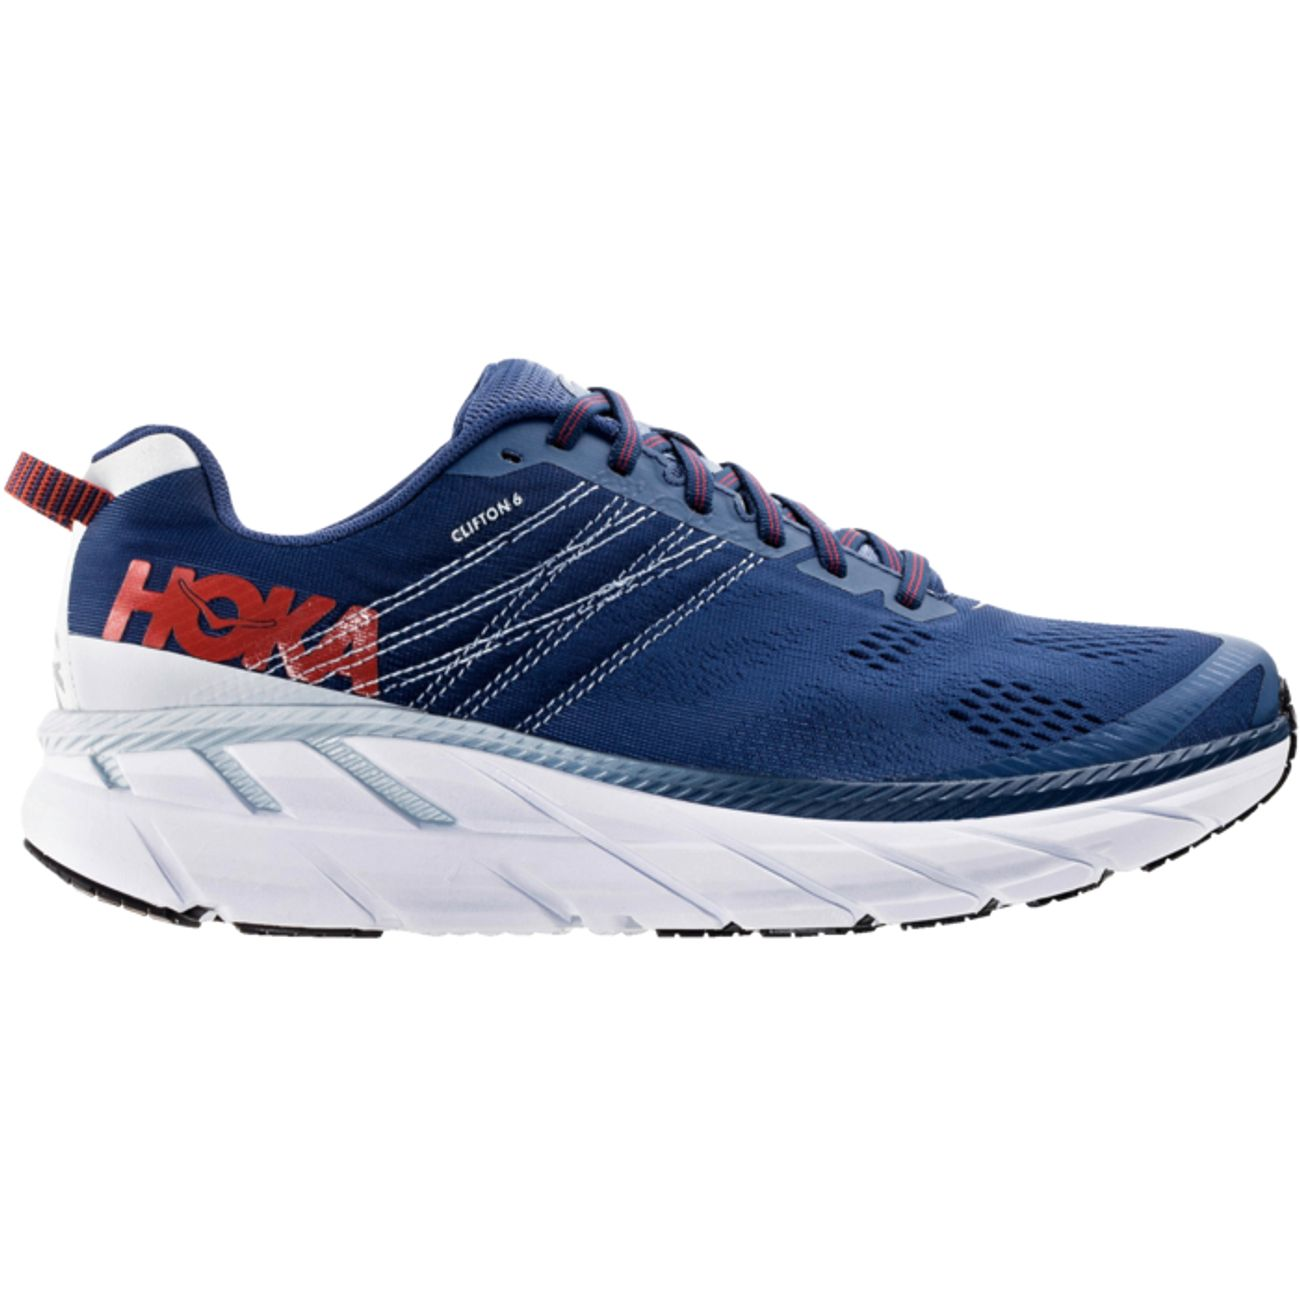 M Hoka Hoka One Clifton 6 0O8wPXnNk